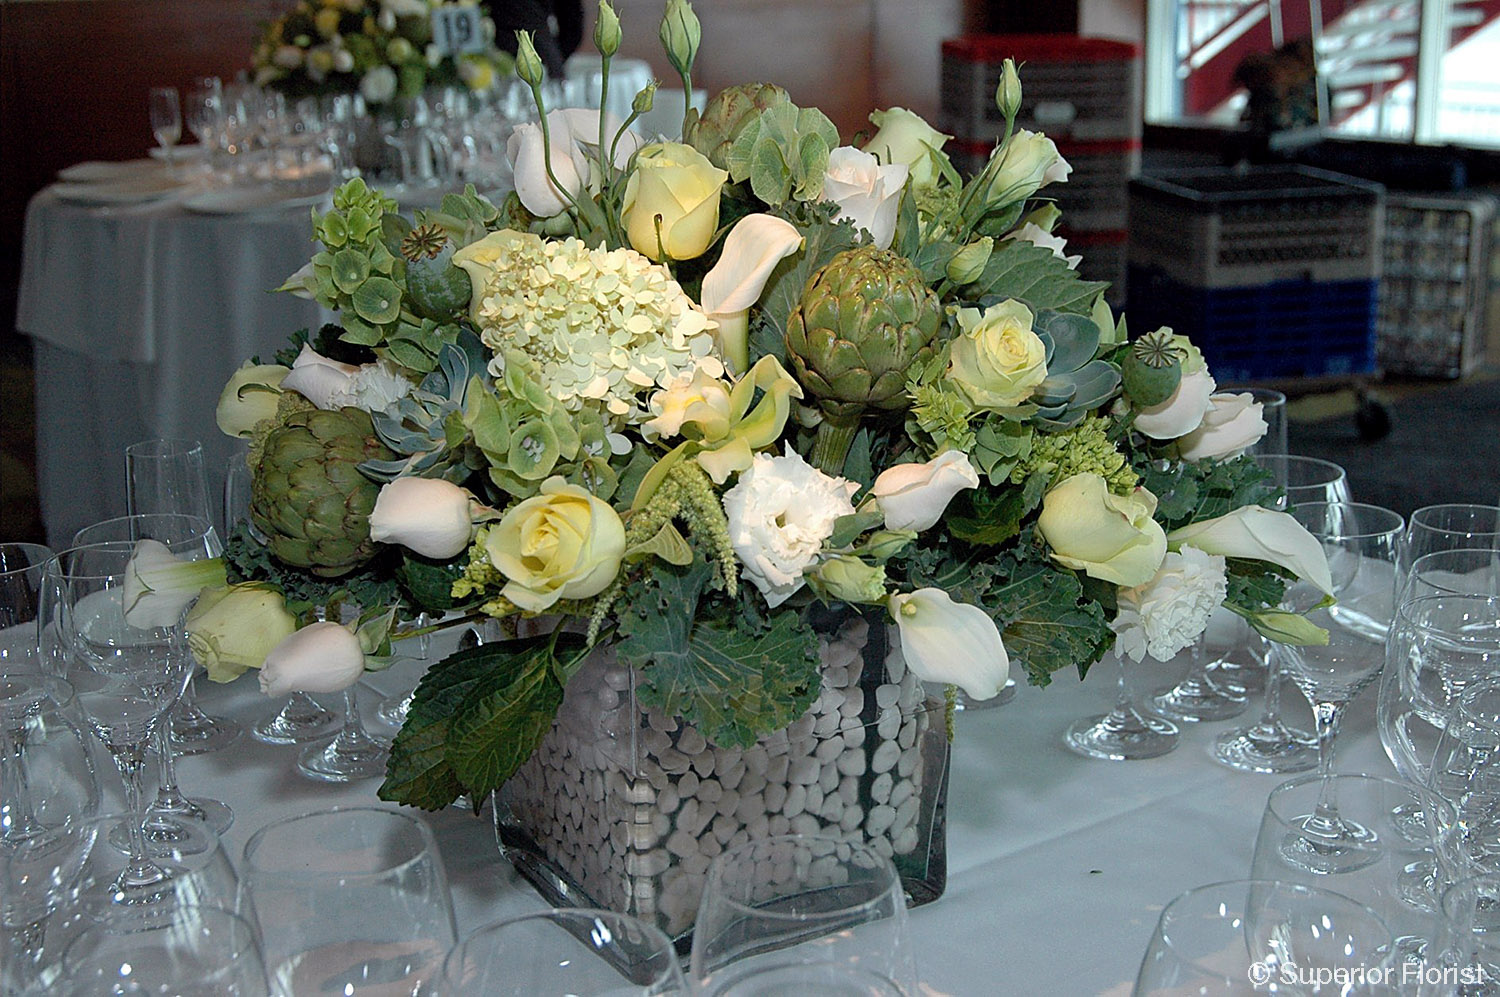 Superior Florist – Centerpieces:  Arrangement of artichokes, kale, succulents, poppies, white and green roses, mini white Callas, white Lisianthus and Bells of Ireland arranged in a large, clear, glass cube vase lined with natural stones.